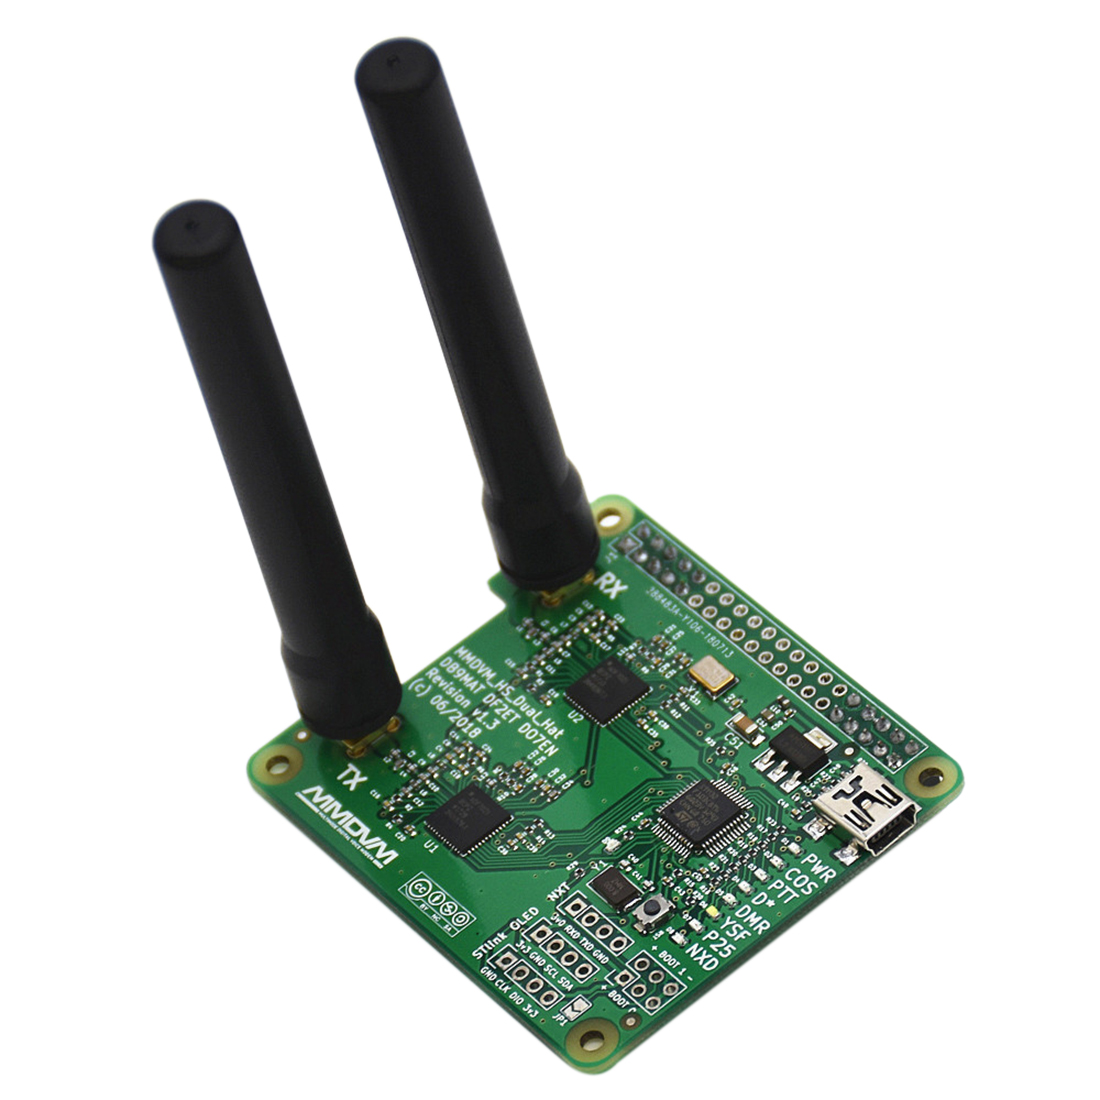 New MMDVM DUPLEX hotspot Support P25 DMR YSF NXDN DMR SLOT 1+ SLOT 2 for Raspberry piNew MMDVM DUPLEX hotspot Support P25 DMR YSF NXDN DMR SLOT 1+ SLOT 2 for Raspberry pi